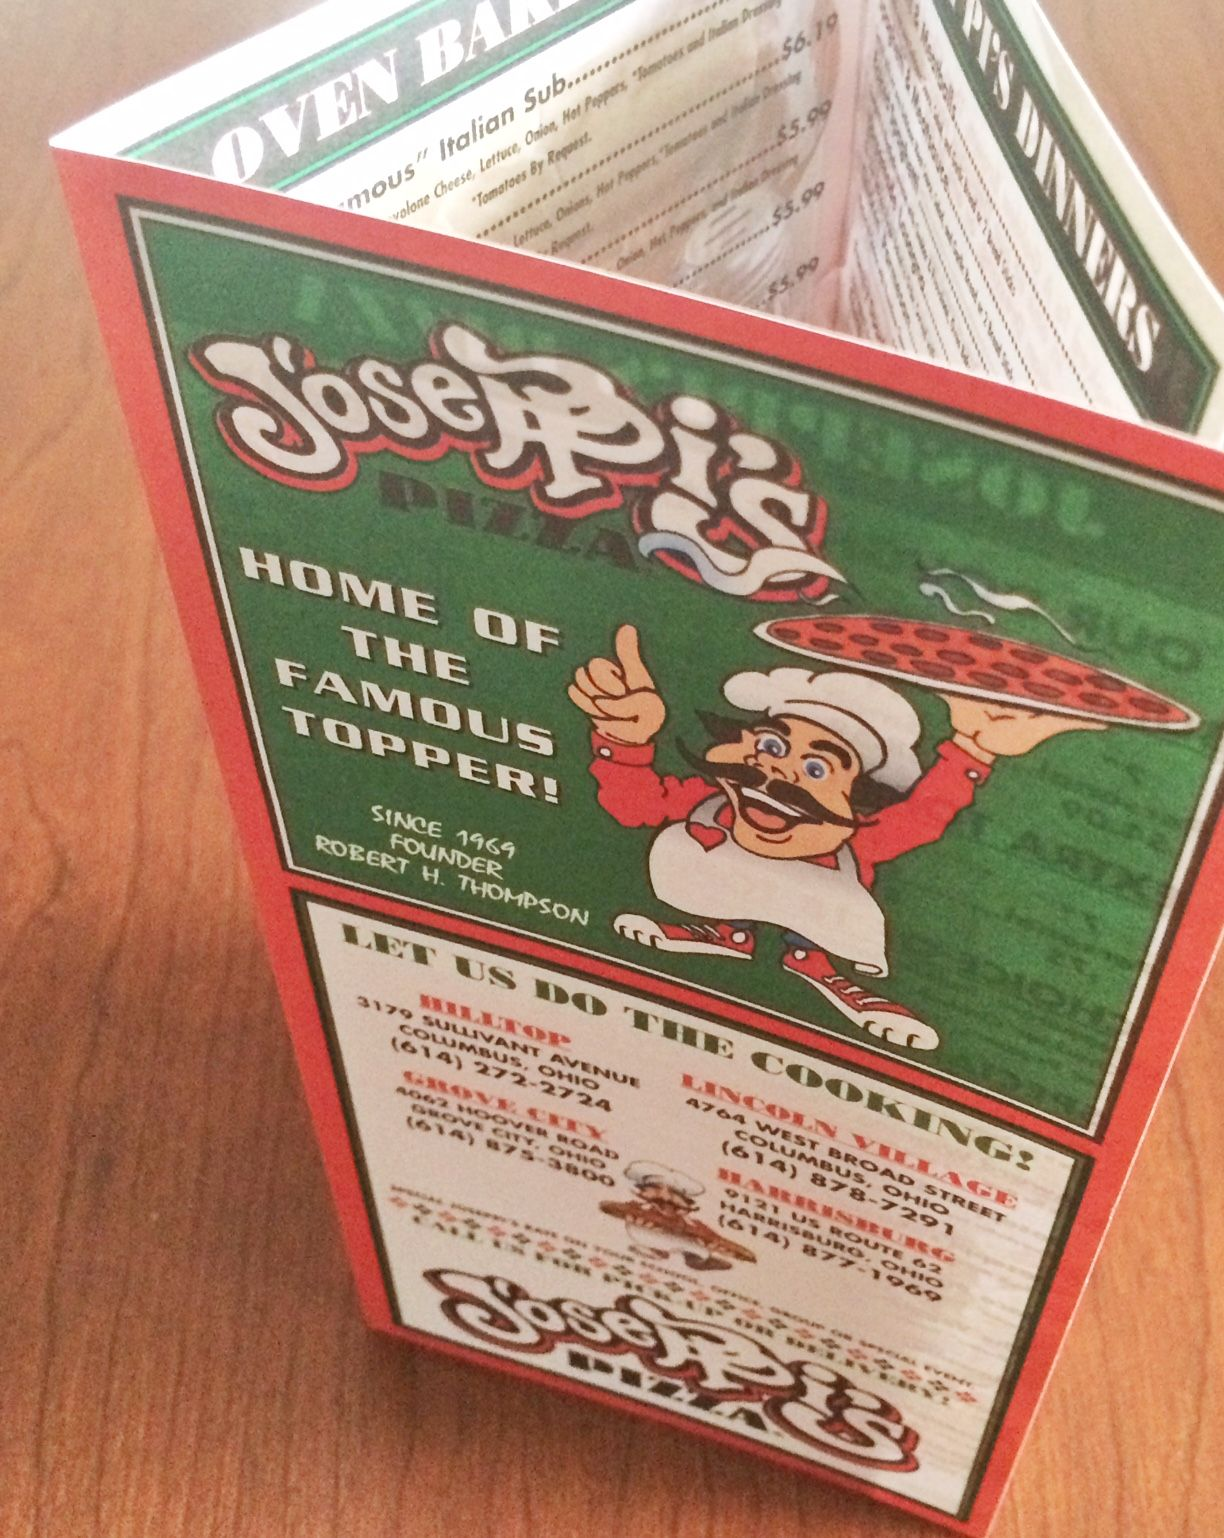 Joseppis Pizza - Printed by Dupli-Systems